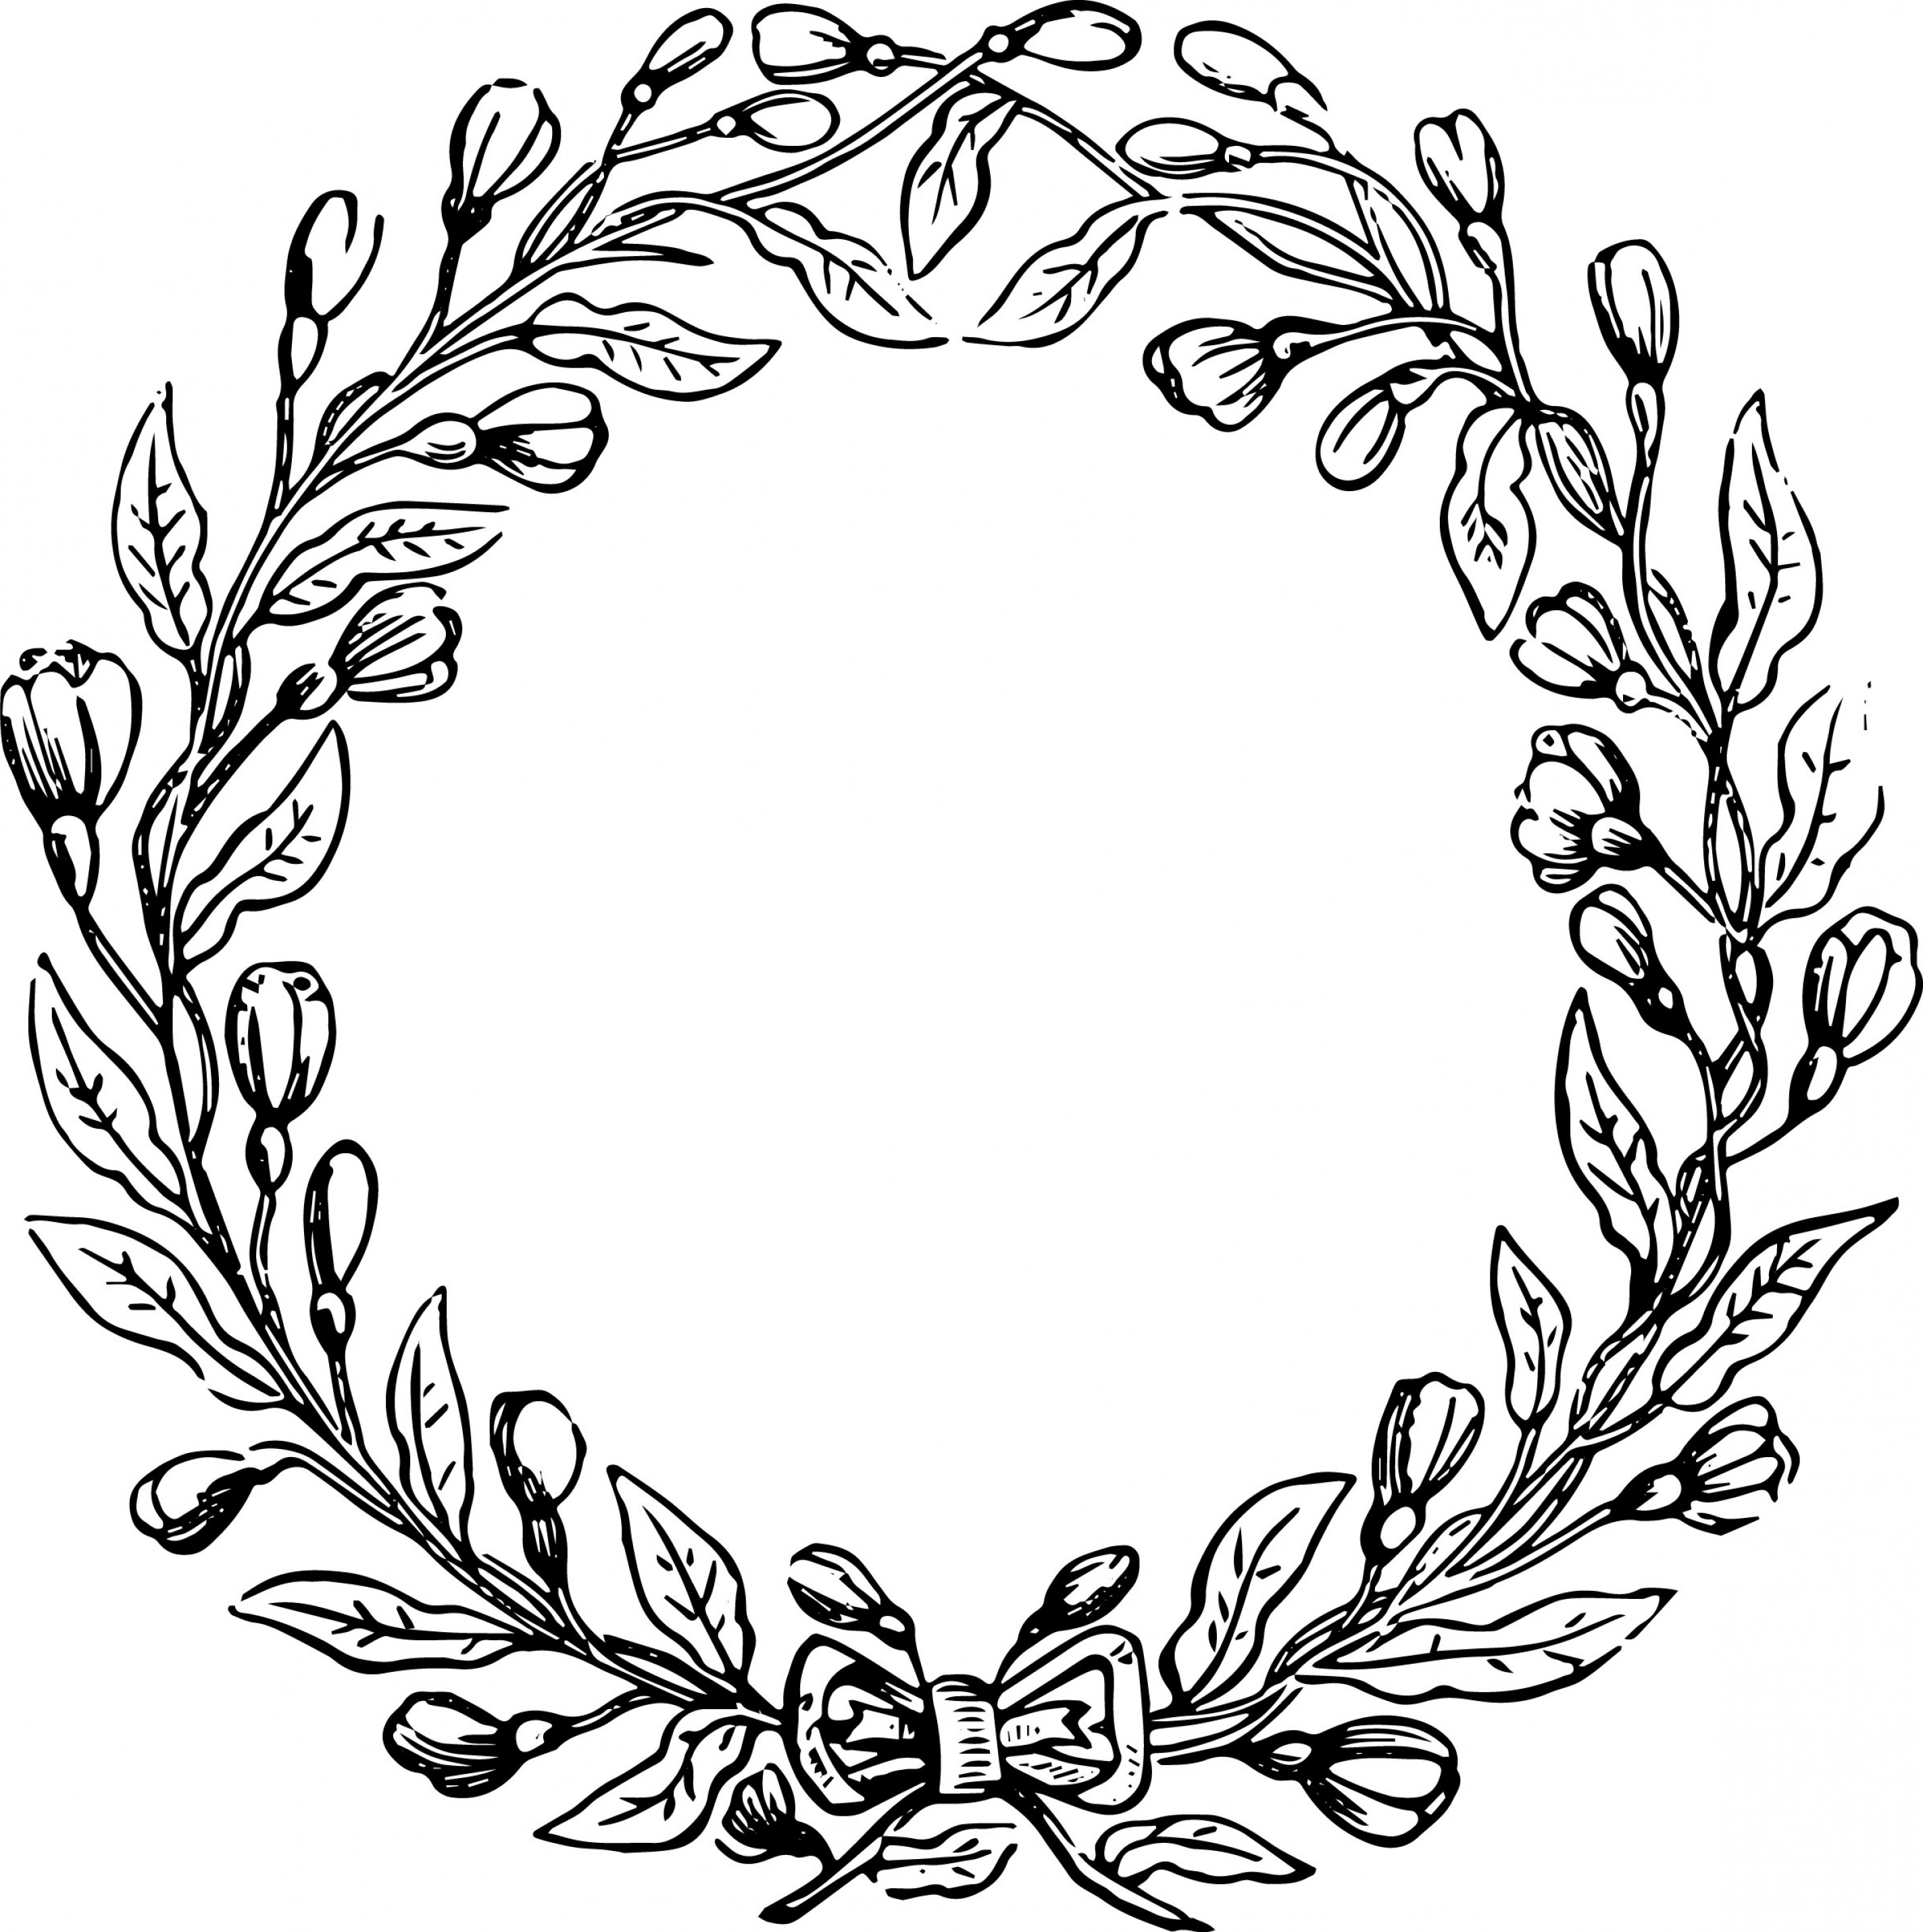 Artwork Vector File: Free Vector File And Clip Art Image Vintage Floral Wreath